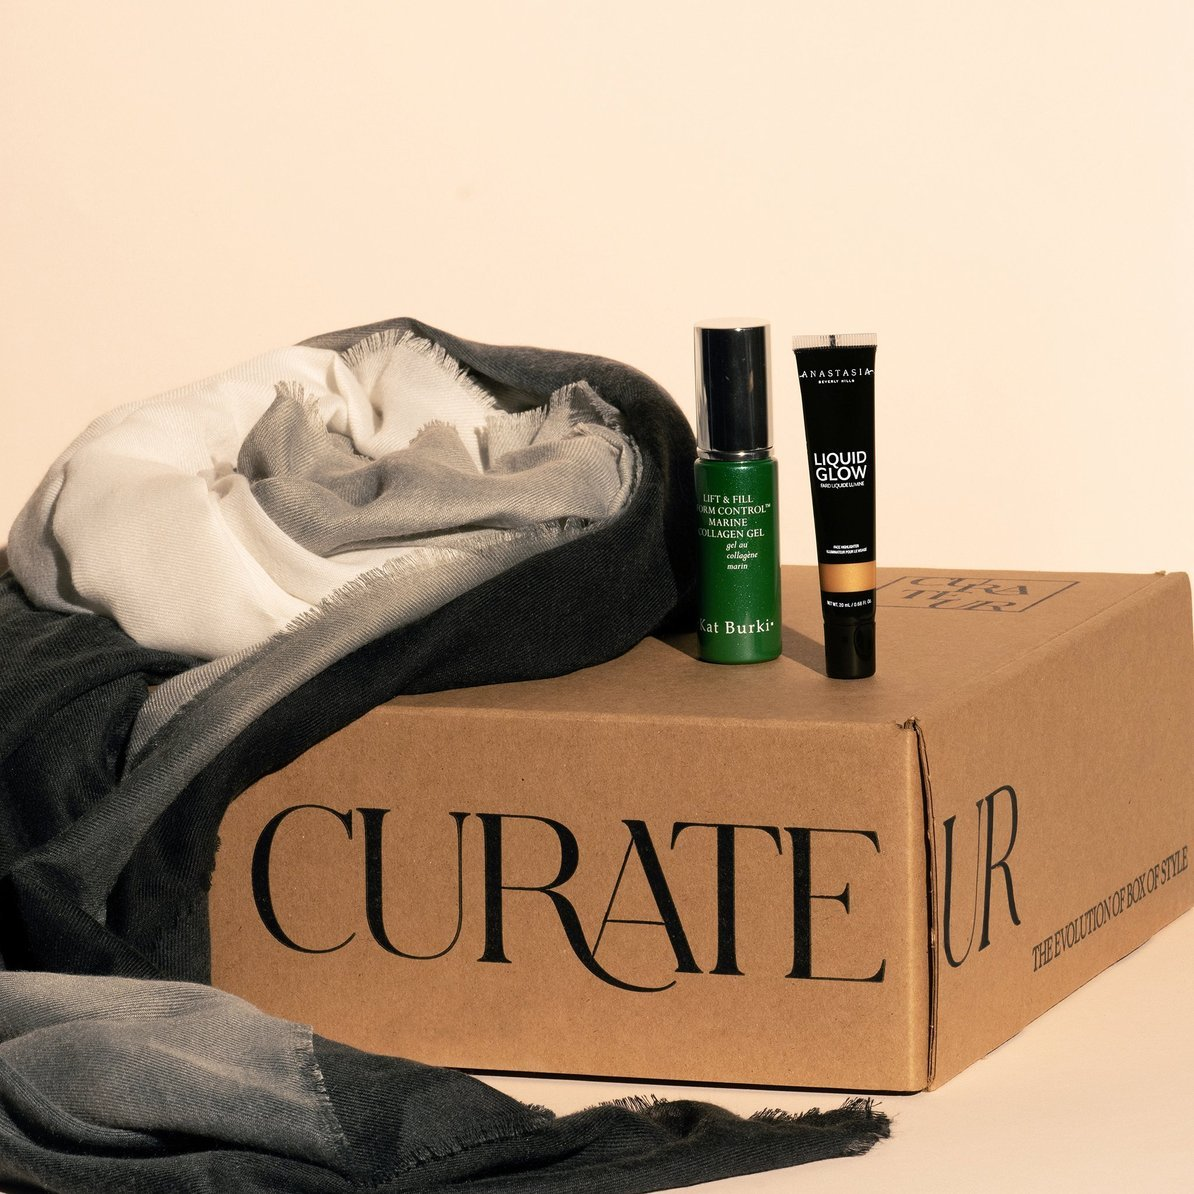 CURATEUR $24.99 Welcome Box Available Now!